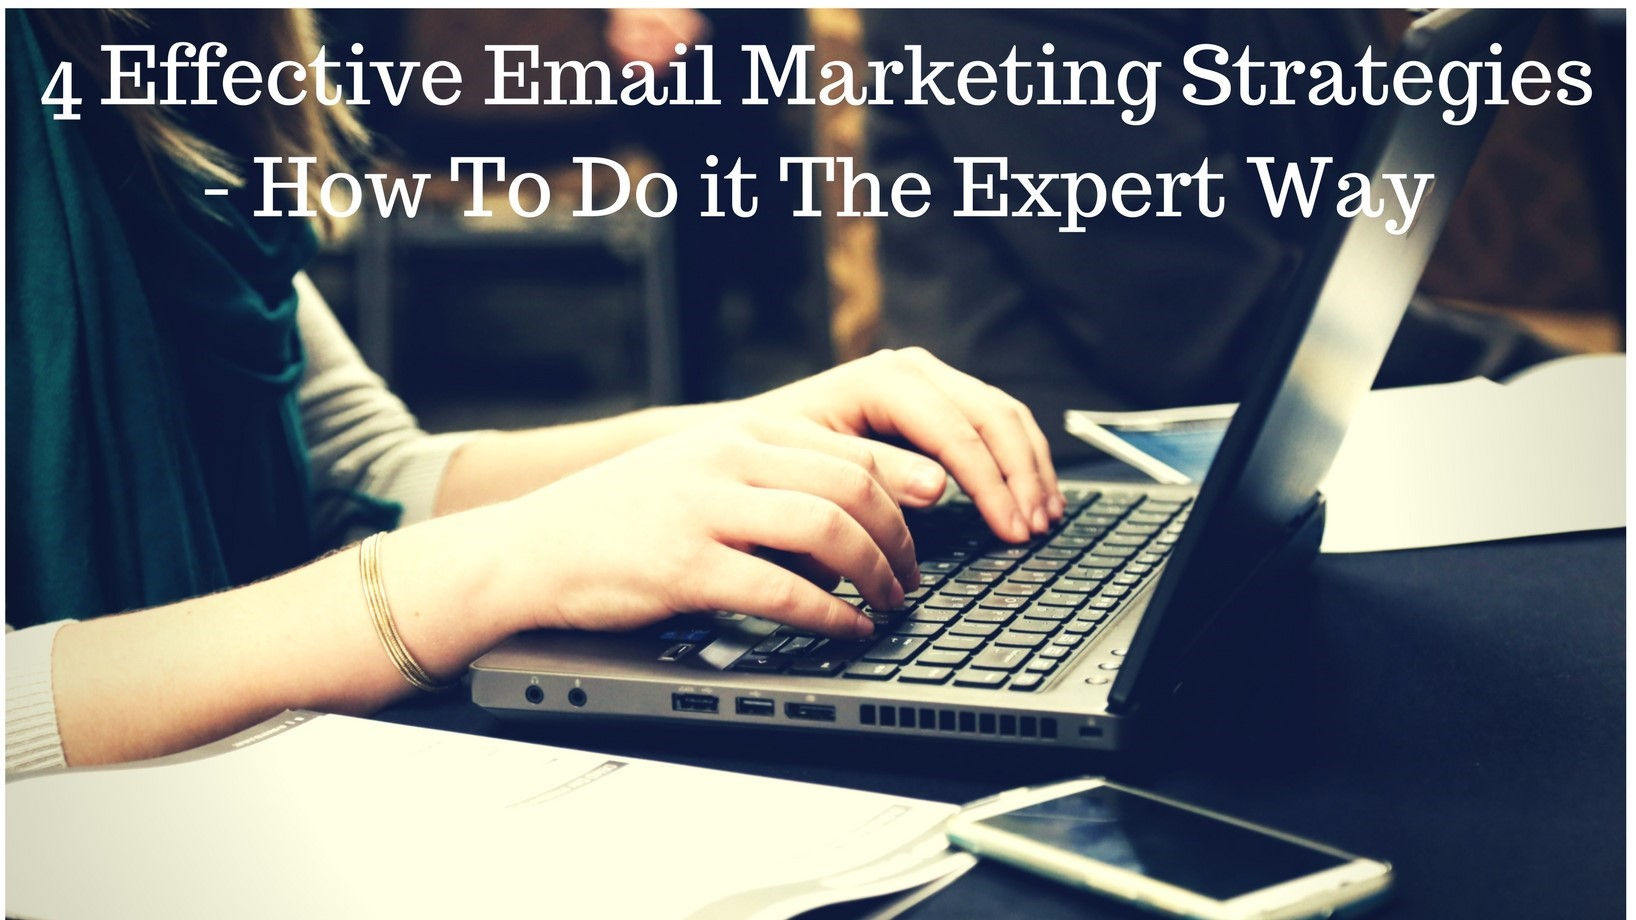 4 Effective Email Marketing Strategies - How To Do it The Expert Way